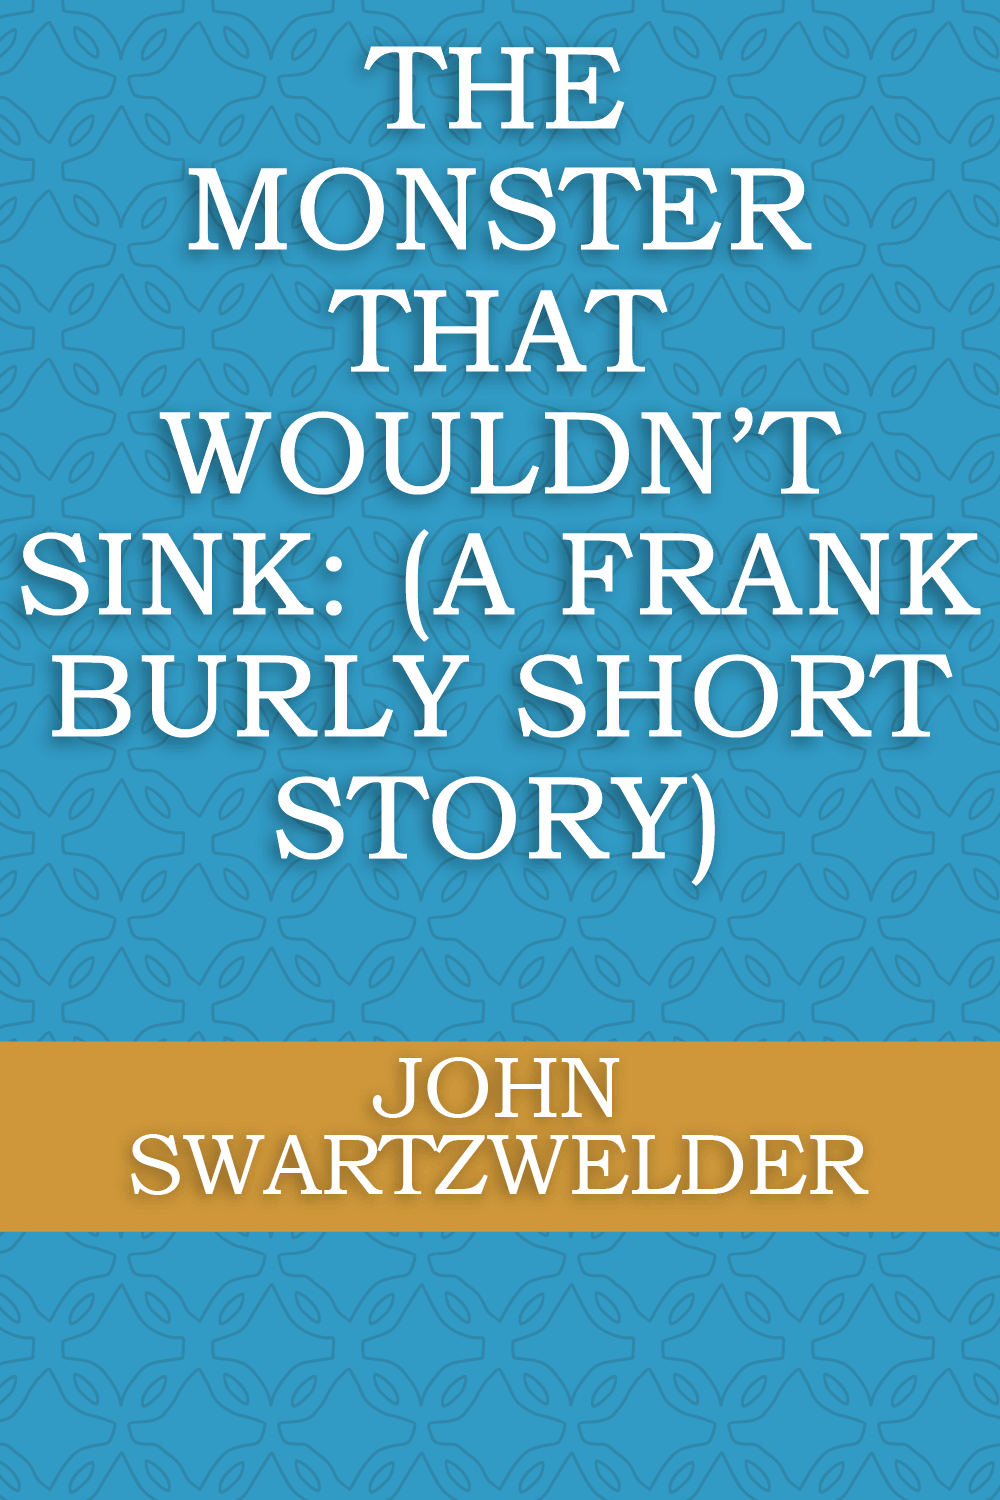 The Monster That Wouldn't Sink: (A Frank Burly Short Story) by John Swartzwelder